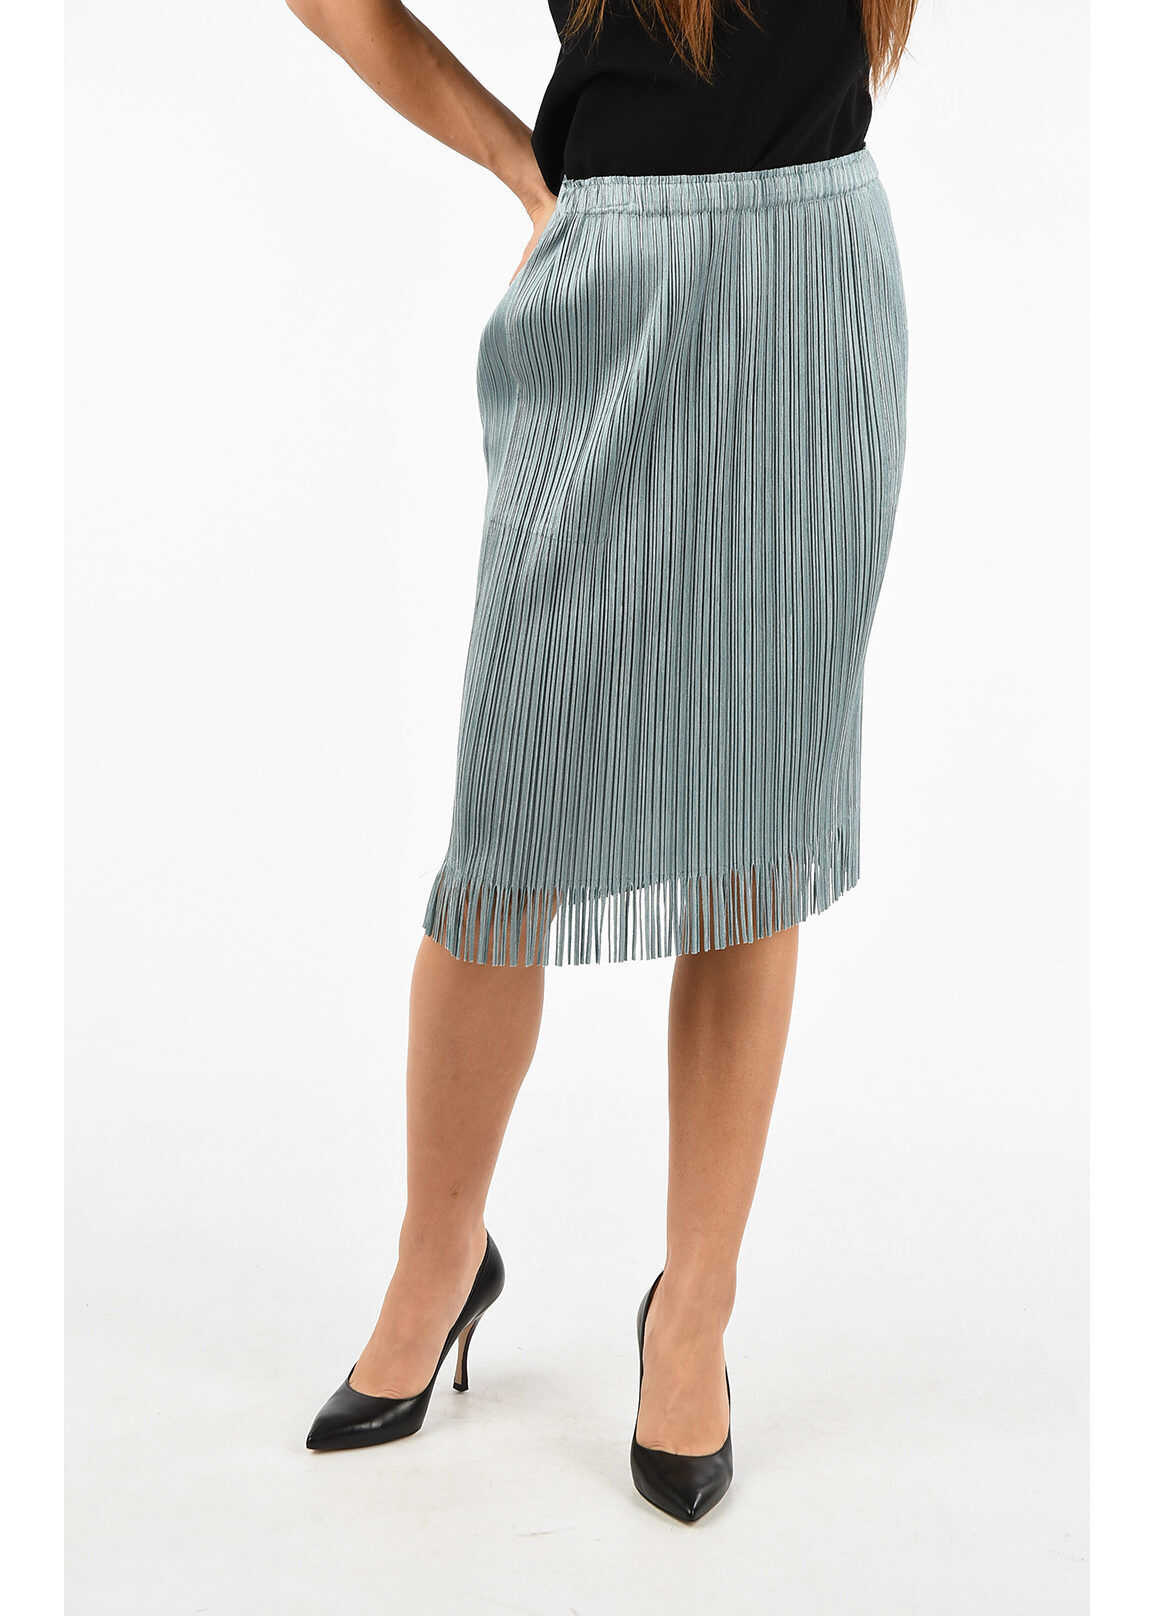 Issey Miyake PLEATS PLEASE Chambray Longuette with Fringe LIGHT BLUE